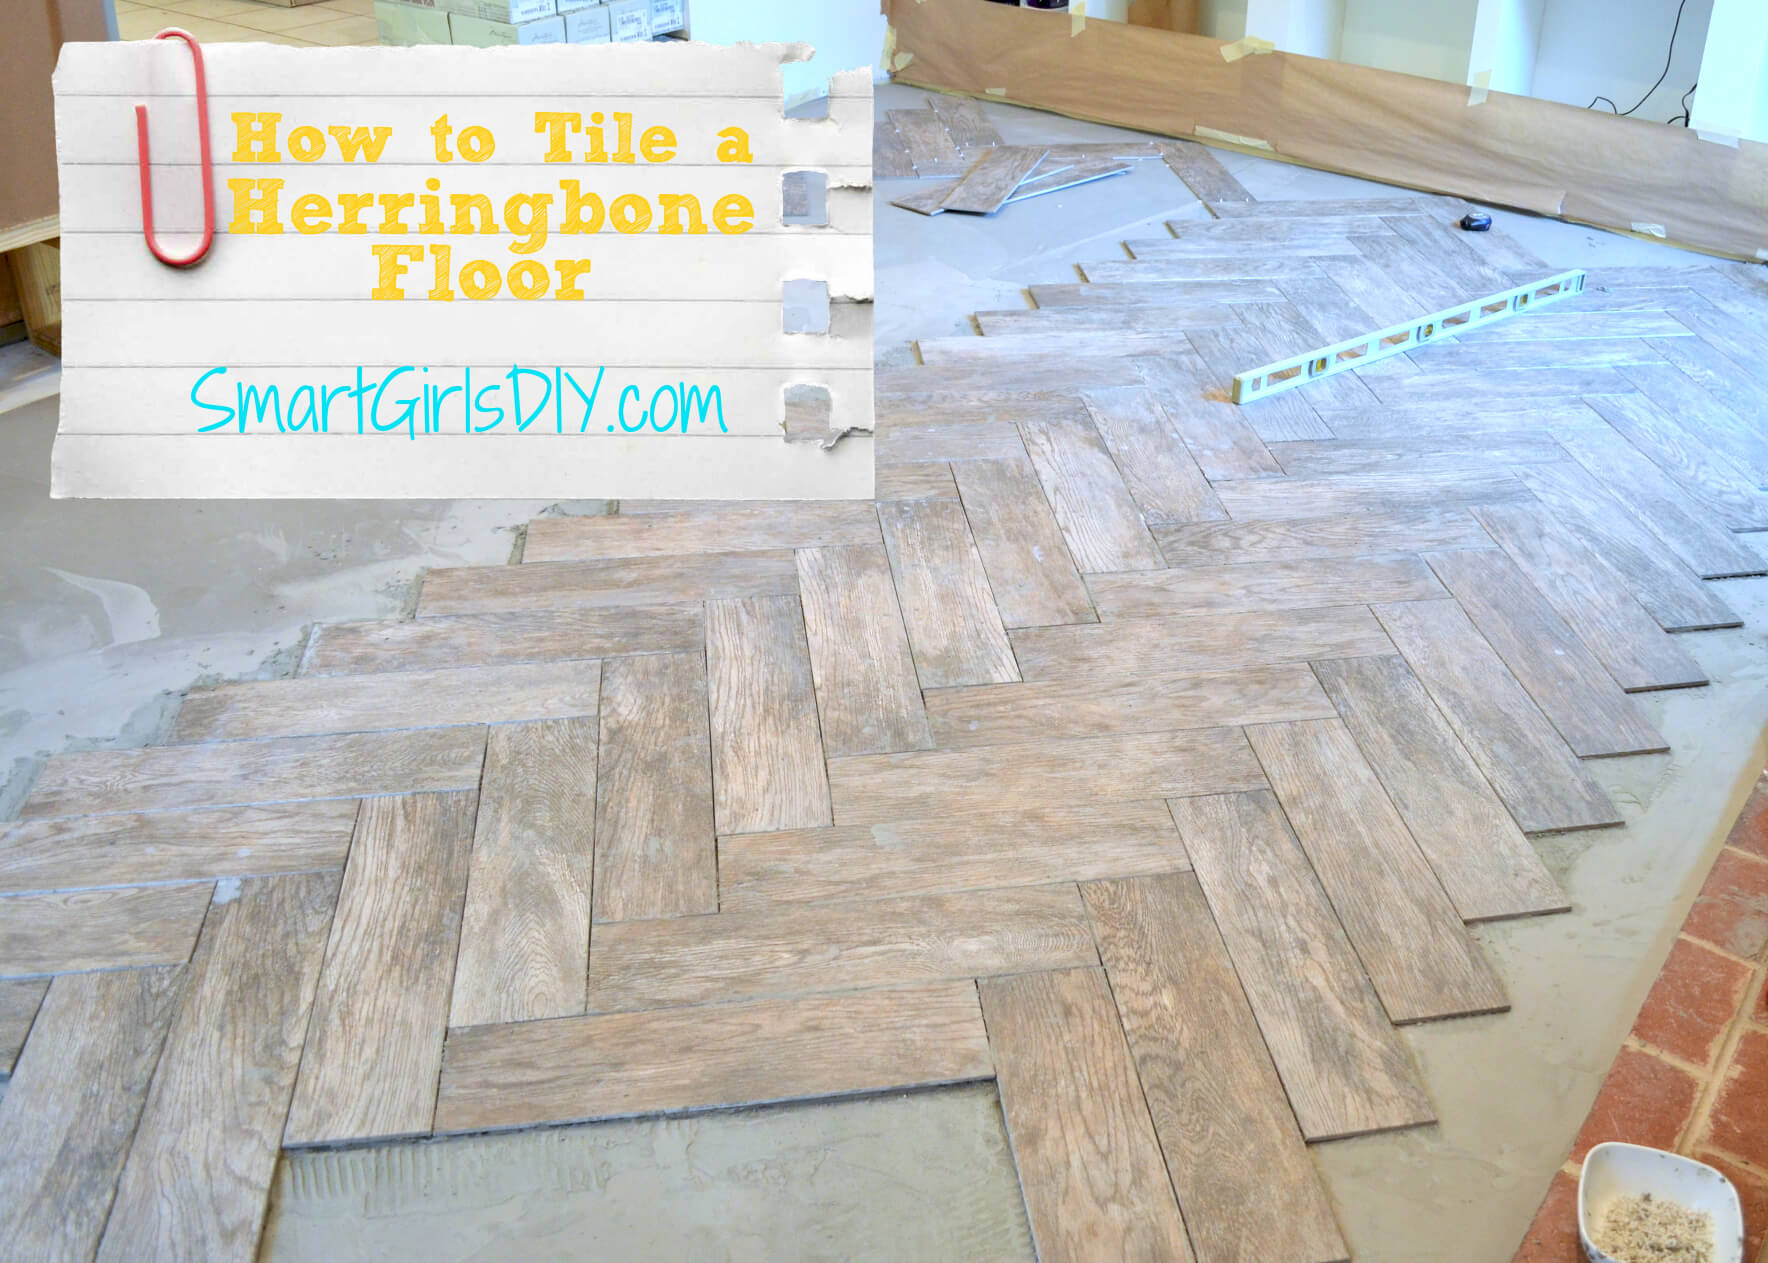 How to tile a herringbone floor family room 10 dailygadgetfo Choice Image